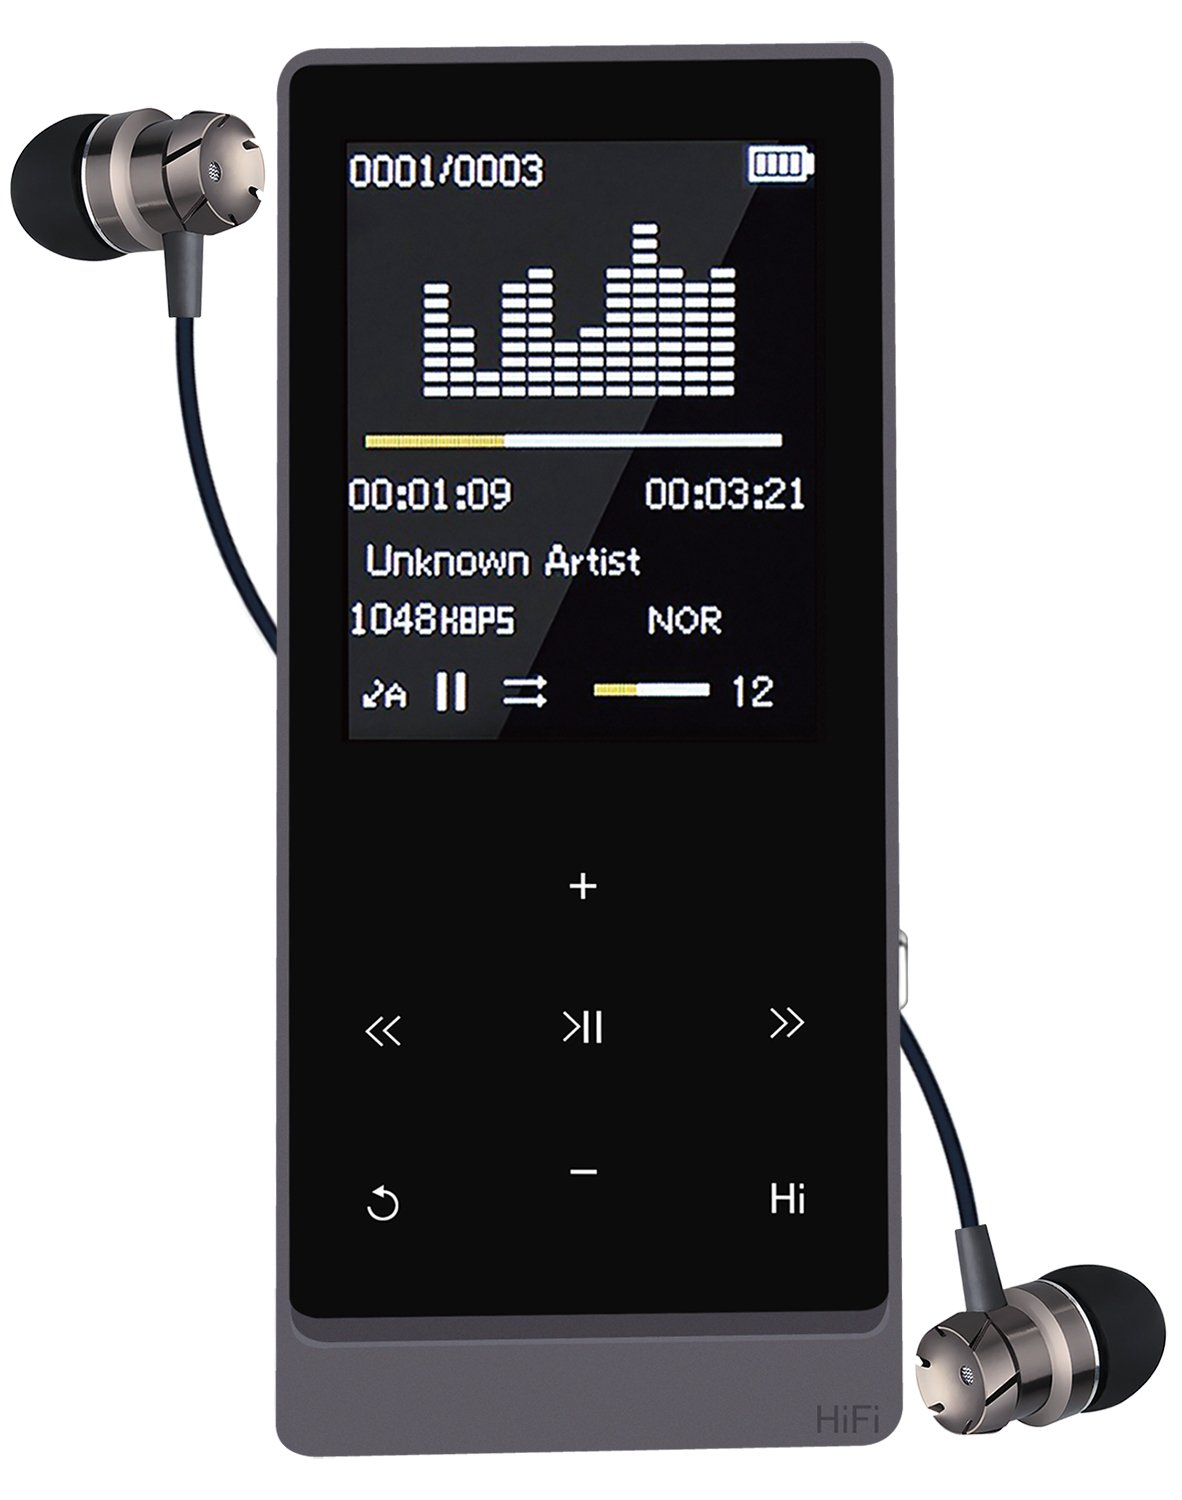 Bluetooth MP3 Player (Bluetooth 4.0),Newiy Start 8GB Lossless Sound Music Player Touch Button 1.8 inch Screen 55 Hours Playback Hi-Fi Sound with Voice Recorder/FM Radio(Expandable UP to 64GB)